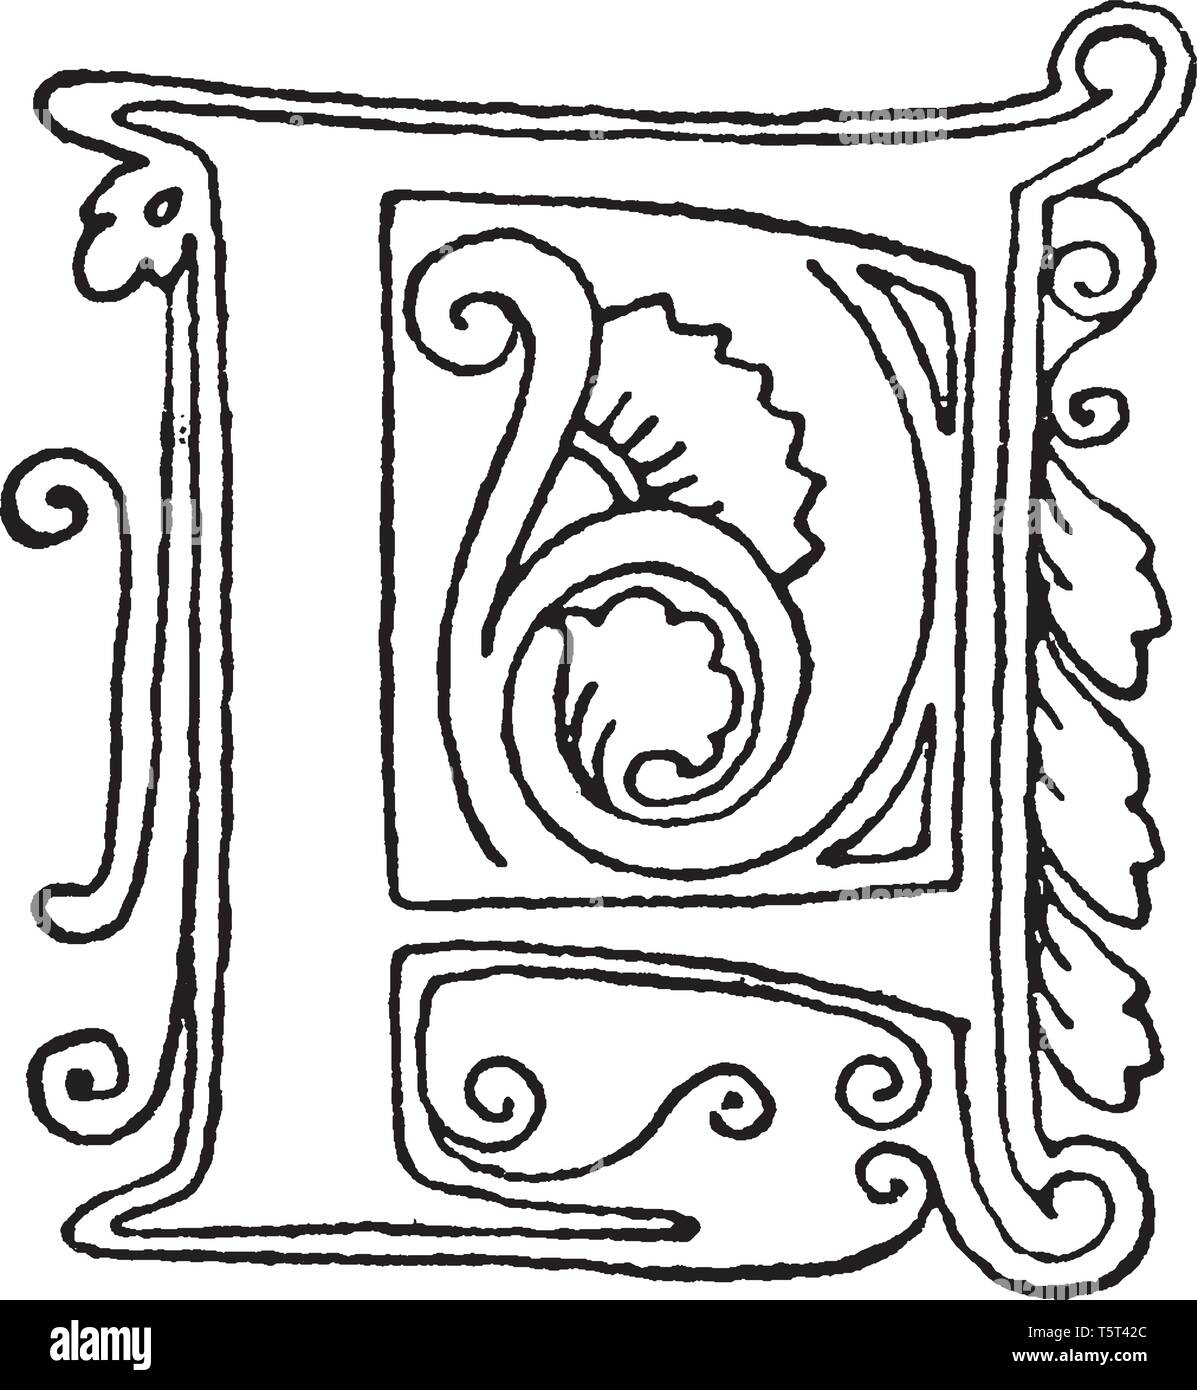 e5c9d1704 An ornamental capital letter A with vines and leaves, vintage line drawing  or engraving illustration